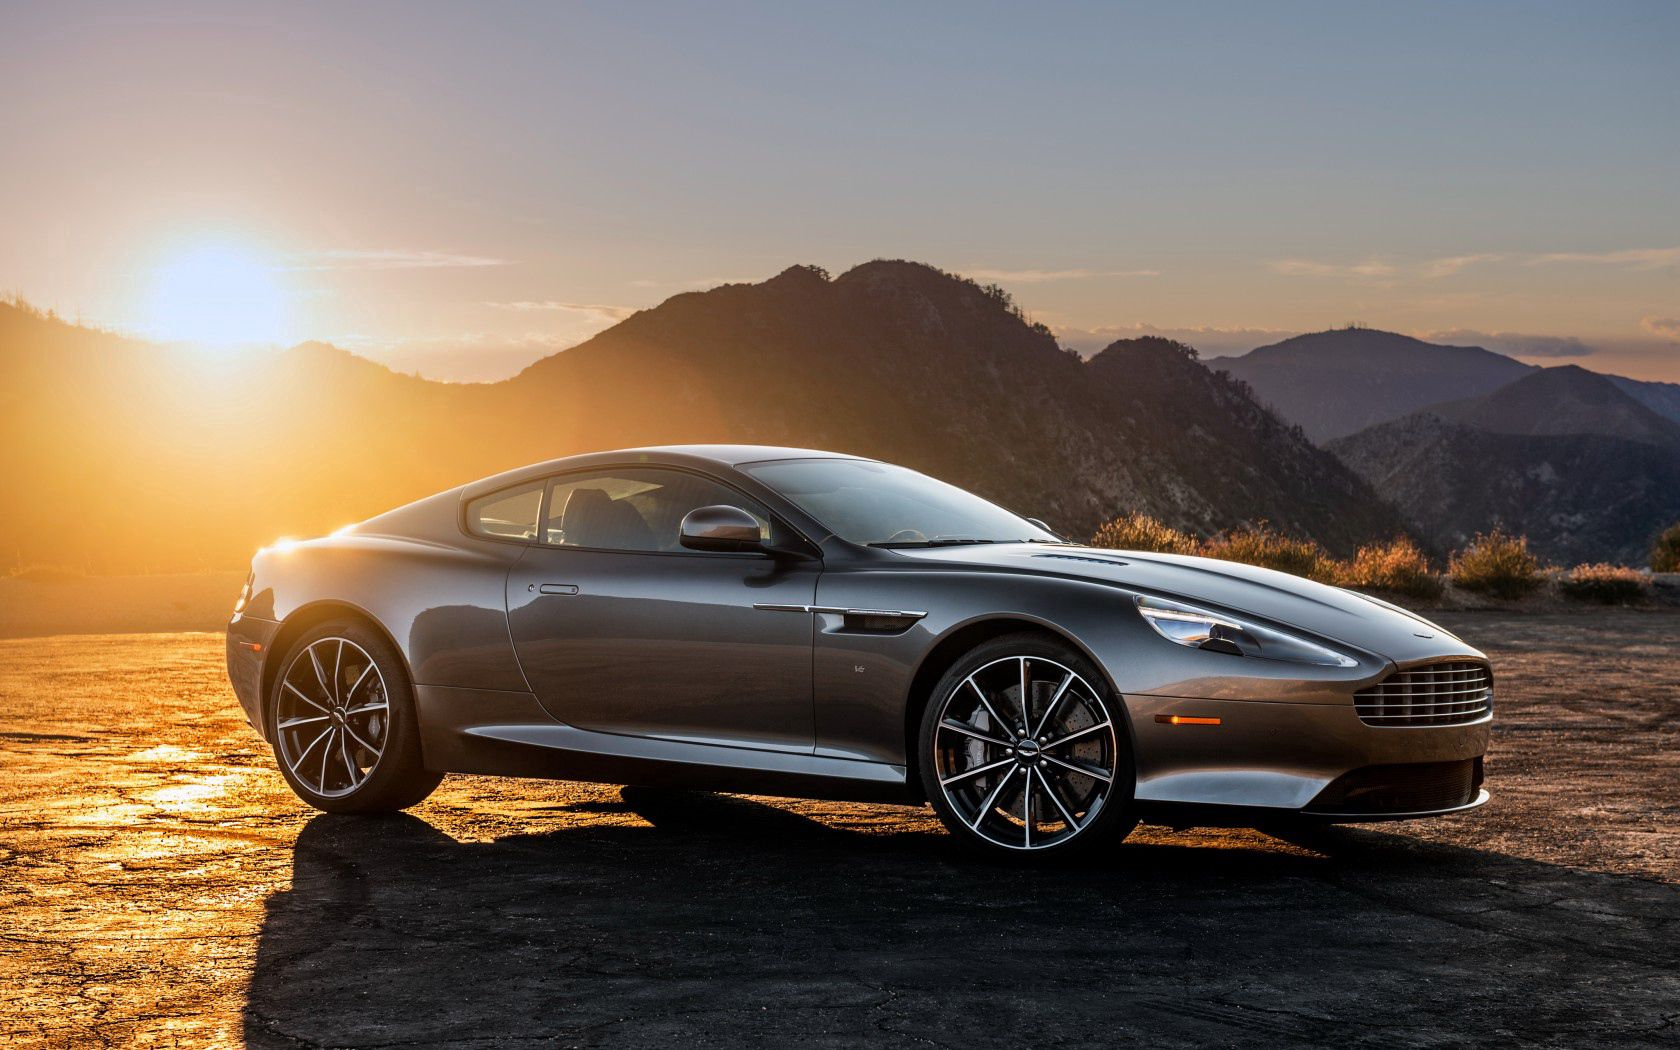 118031 download wallpaper Aston Martin, Cars, Side View, Gt, Db9 screensavers and pictures for free